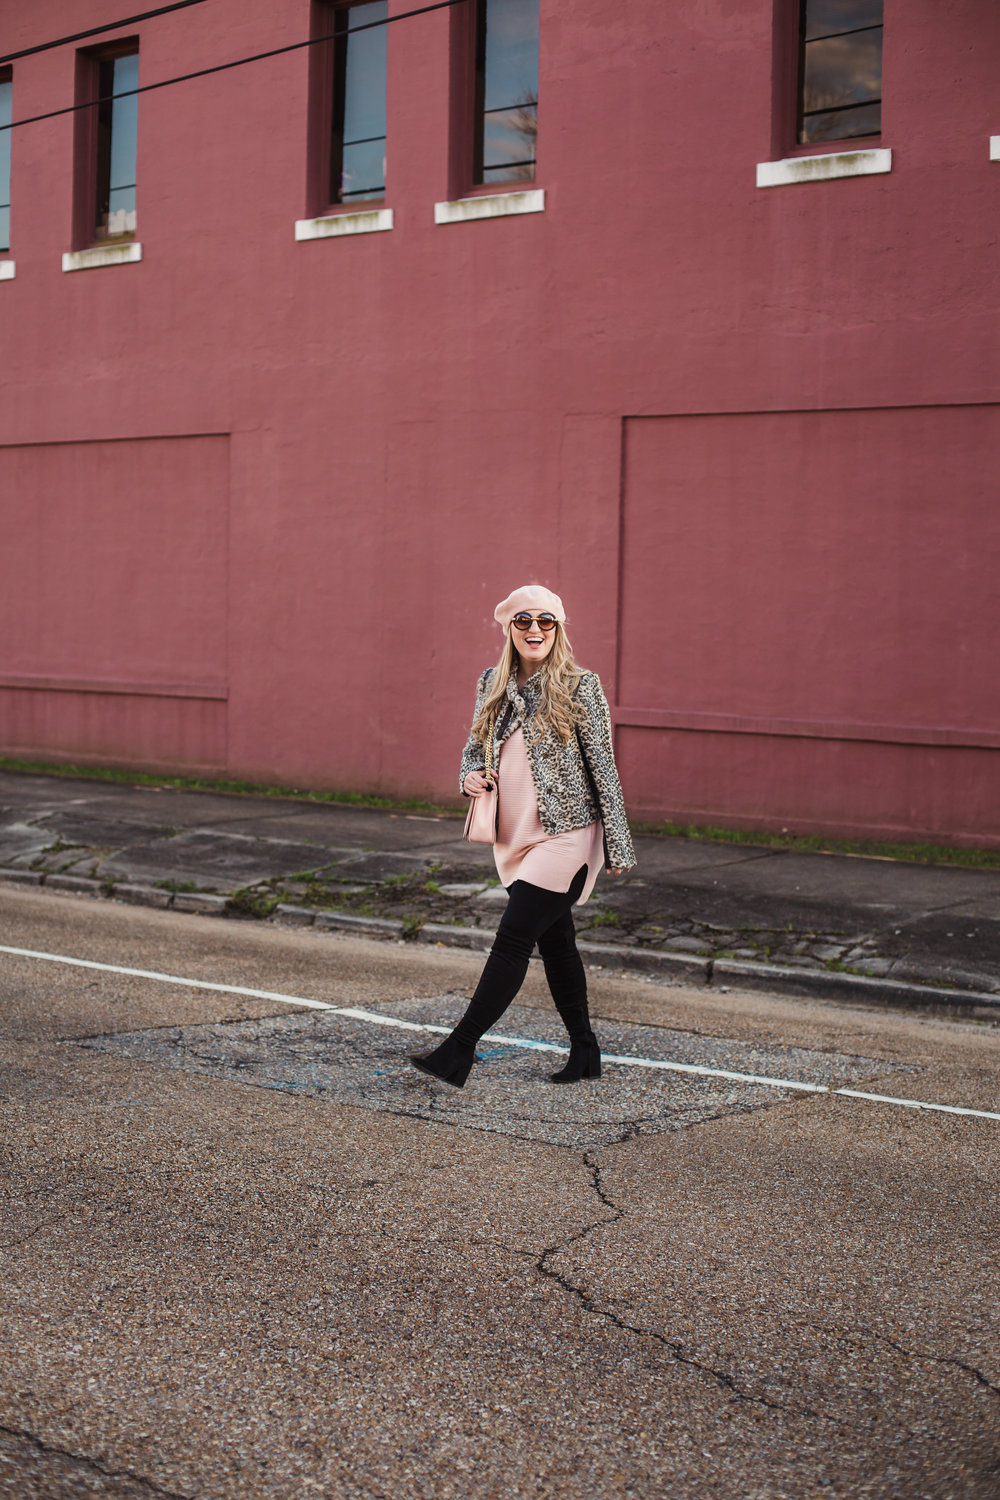 Rework your pink wardrobe. How to style a pink wardrobe